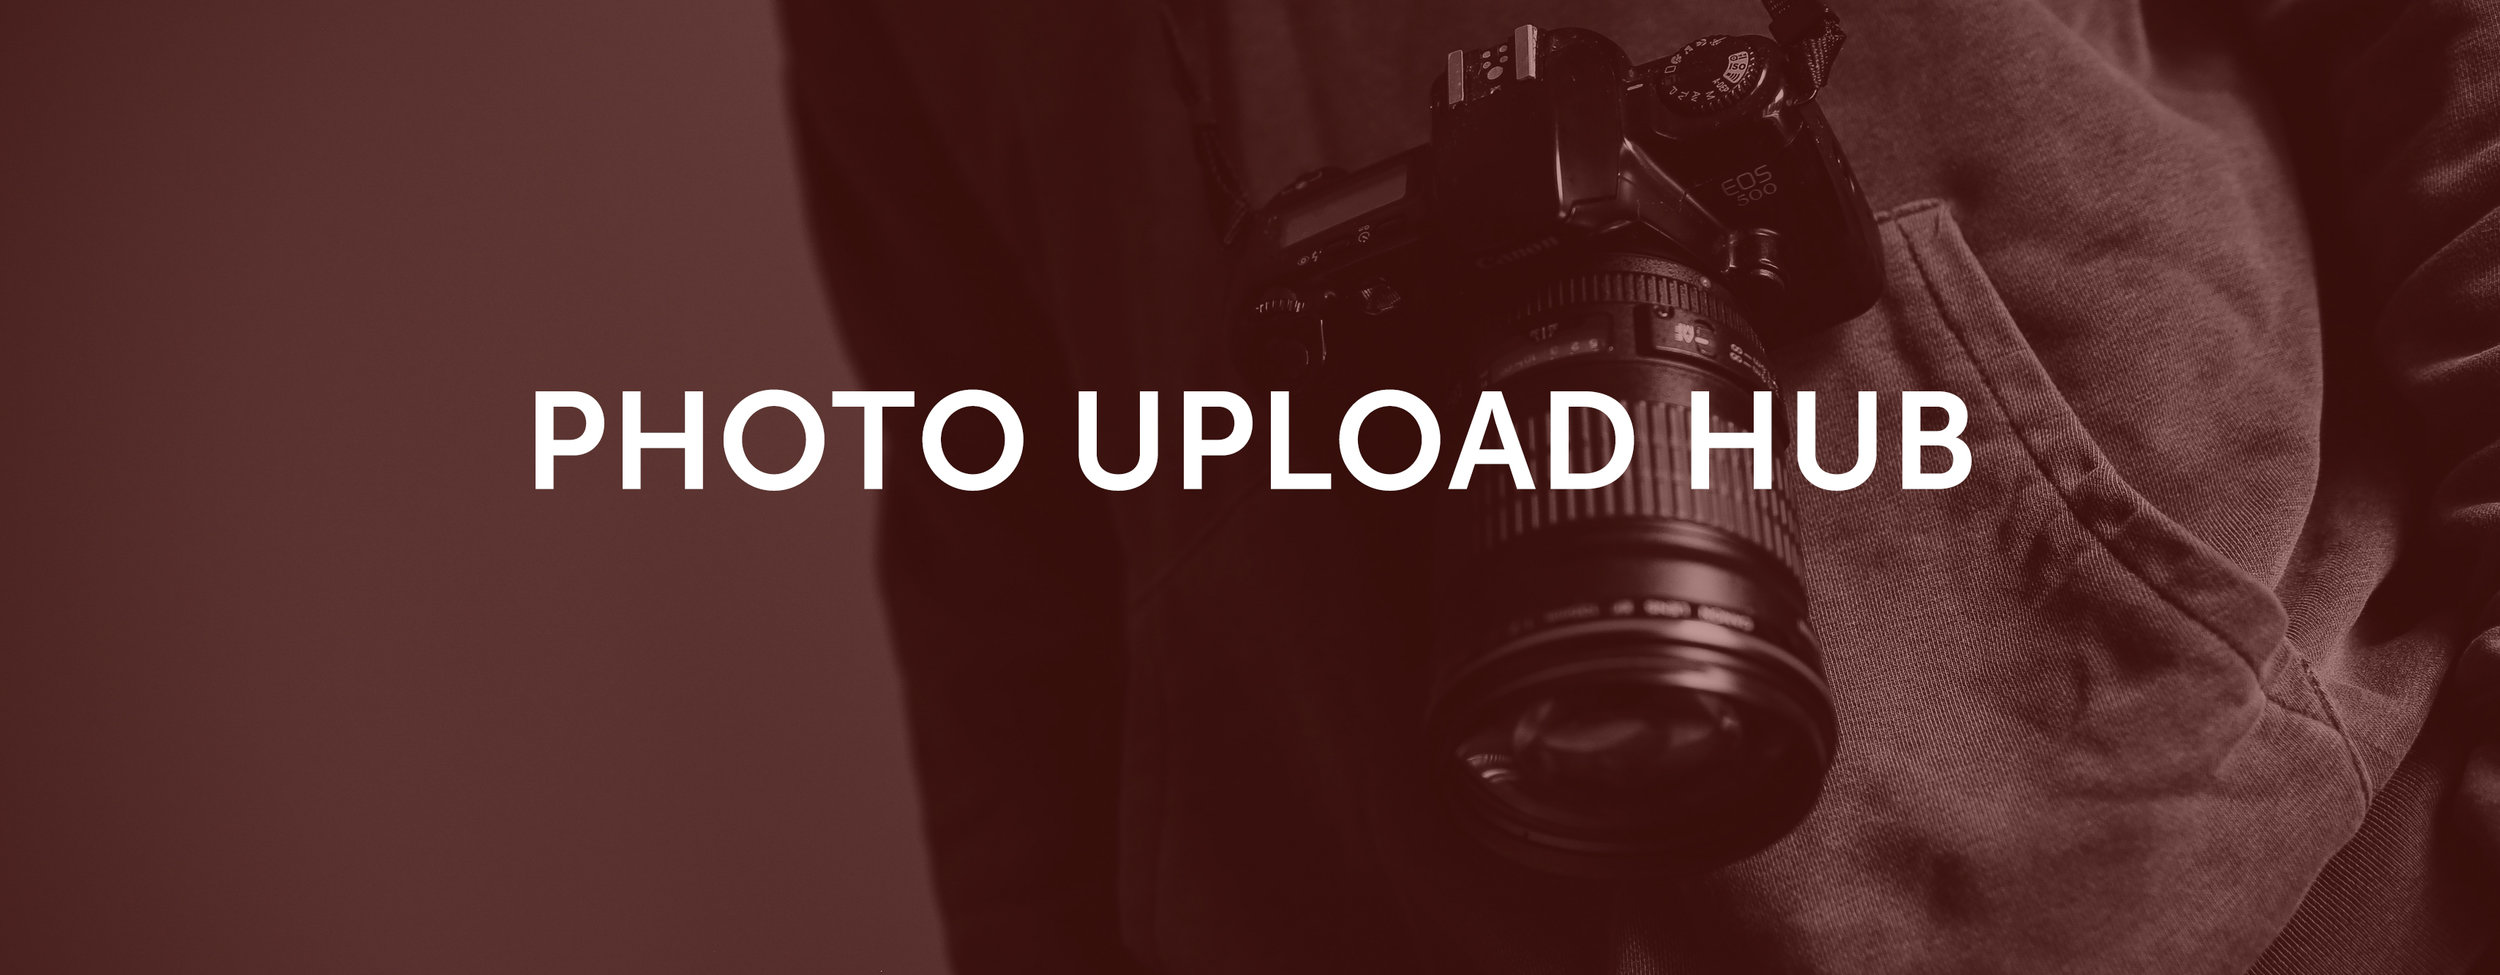 Photo Upload Hub.jpg